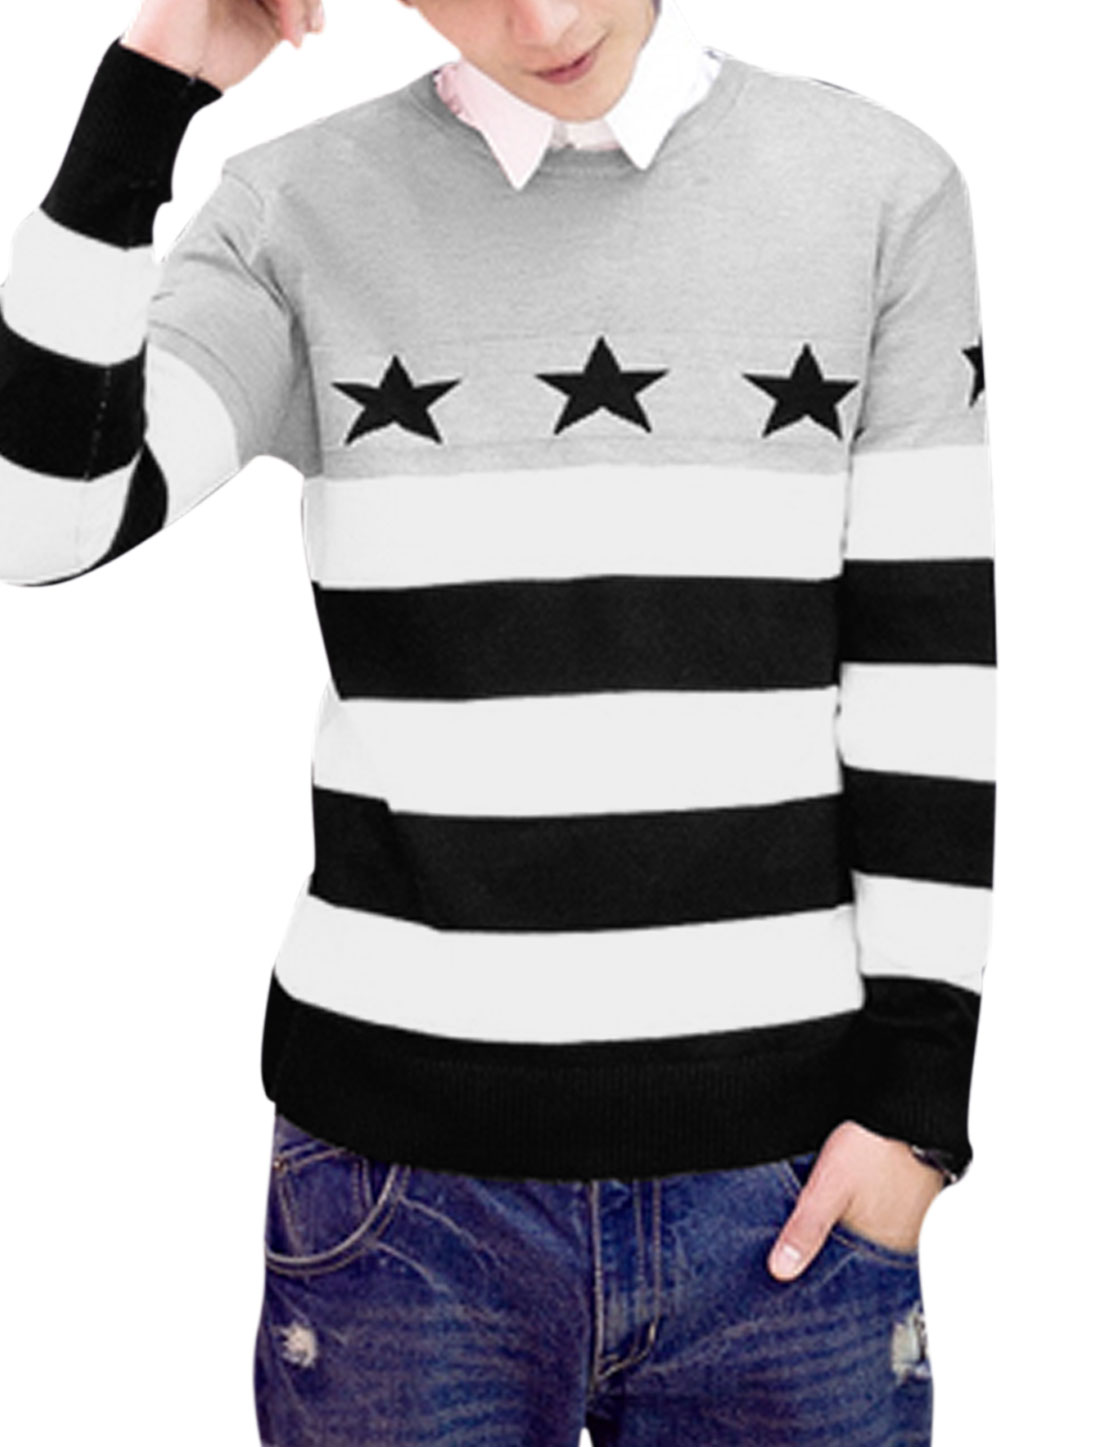 Men Crew Neck Stars Stripes Pattern Casual Sweater Light Gray Black M